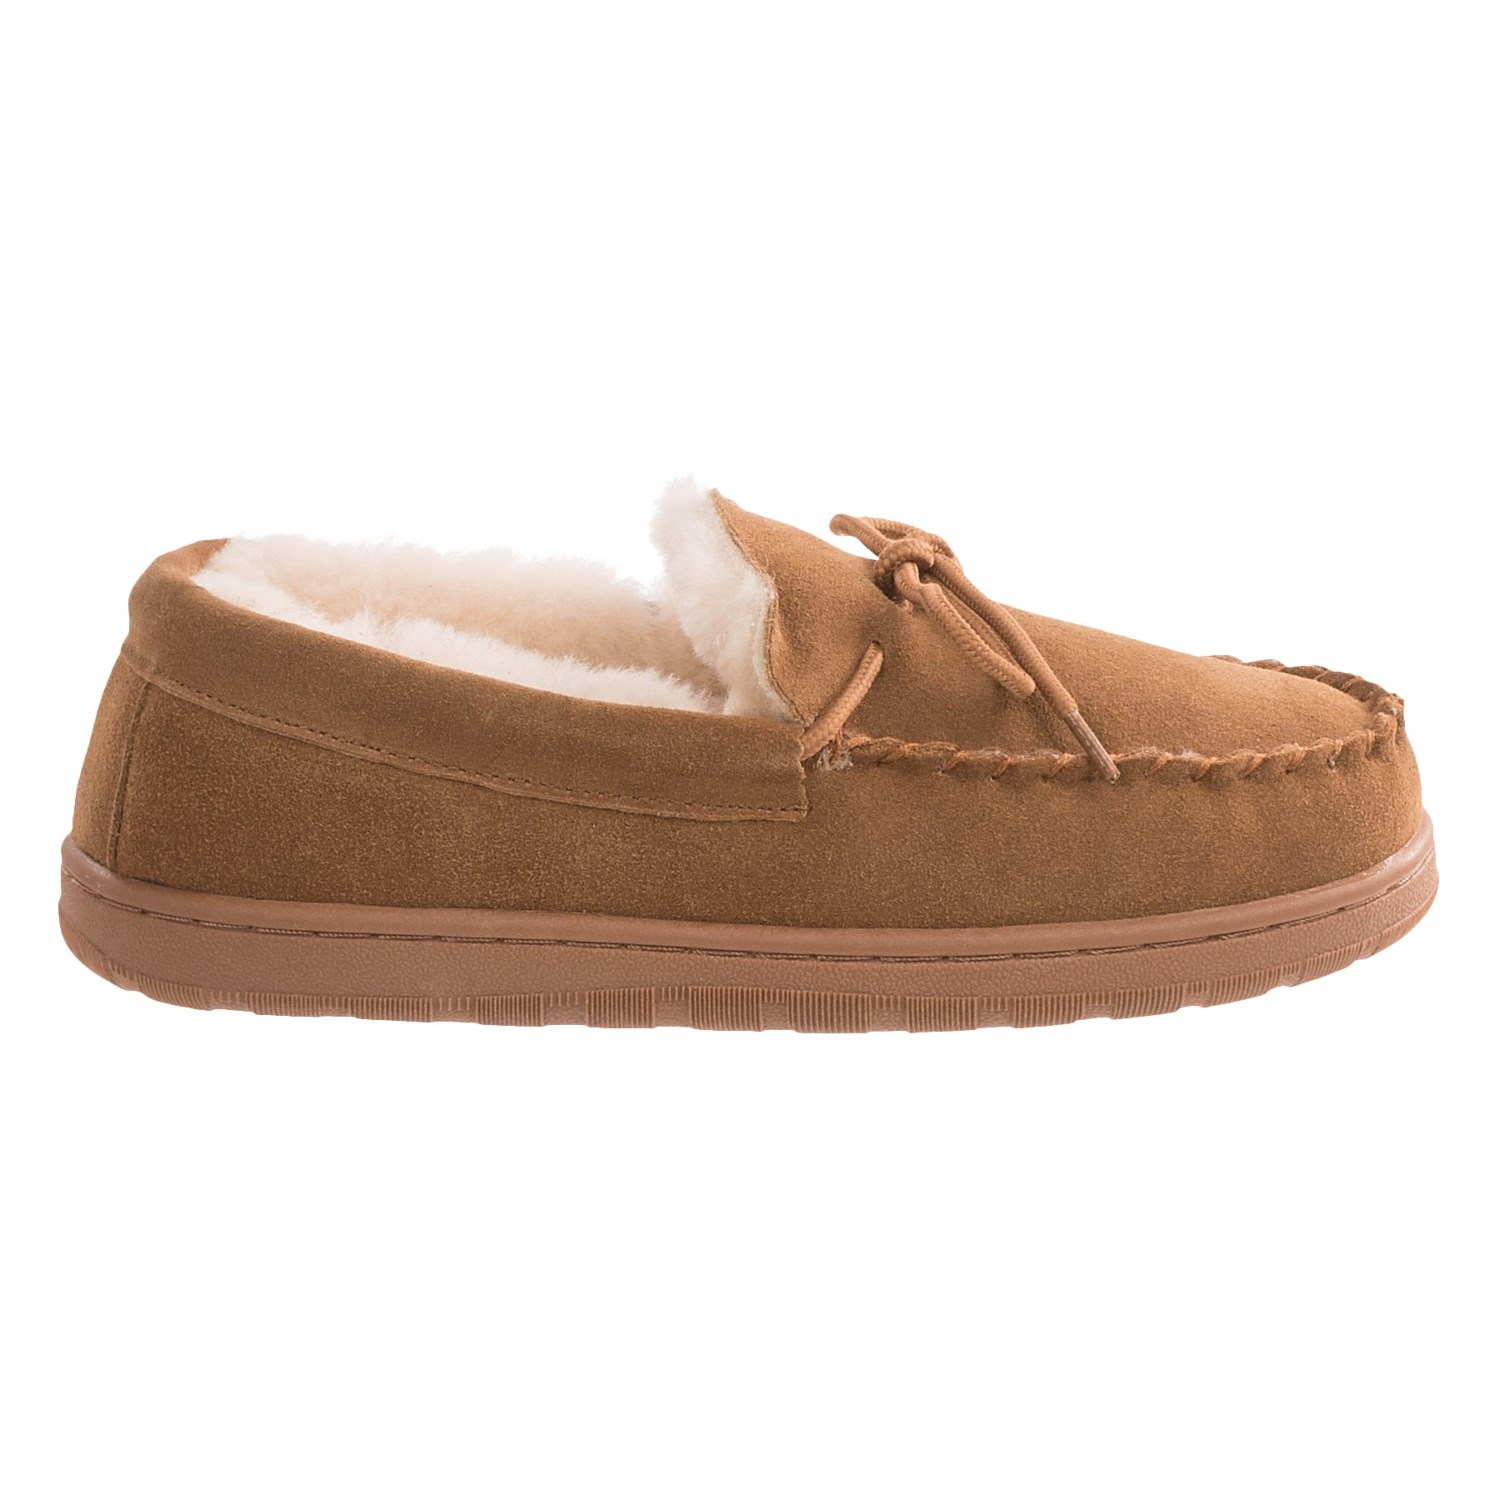 lamo footwear classic moccasin slippers for 7518m